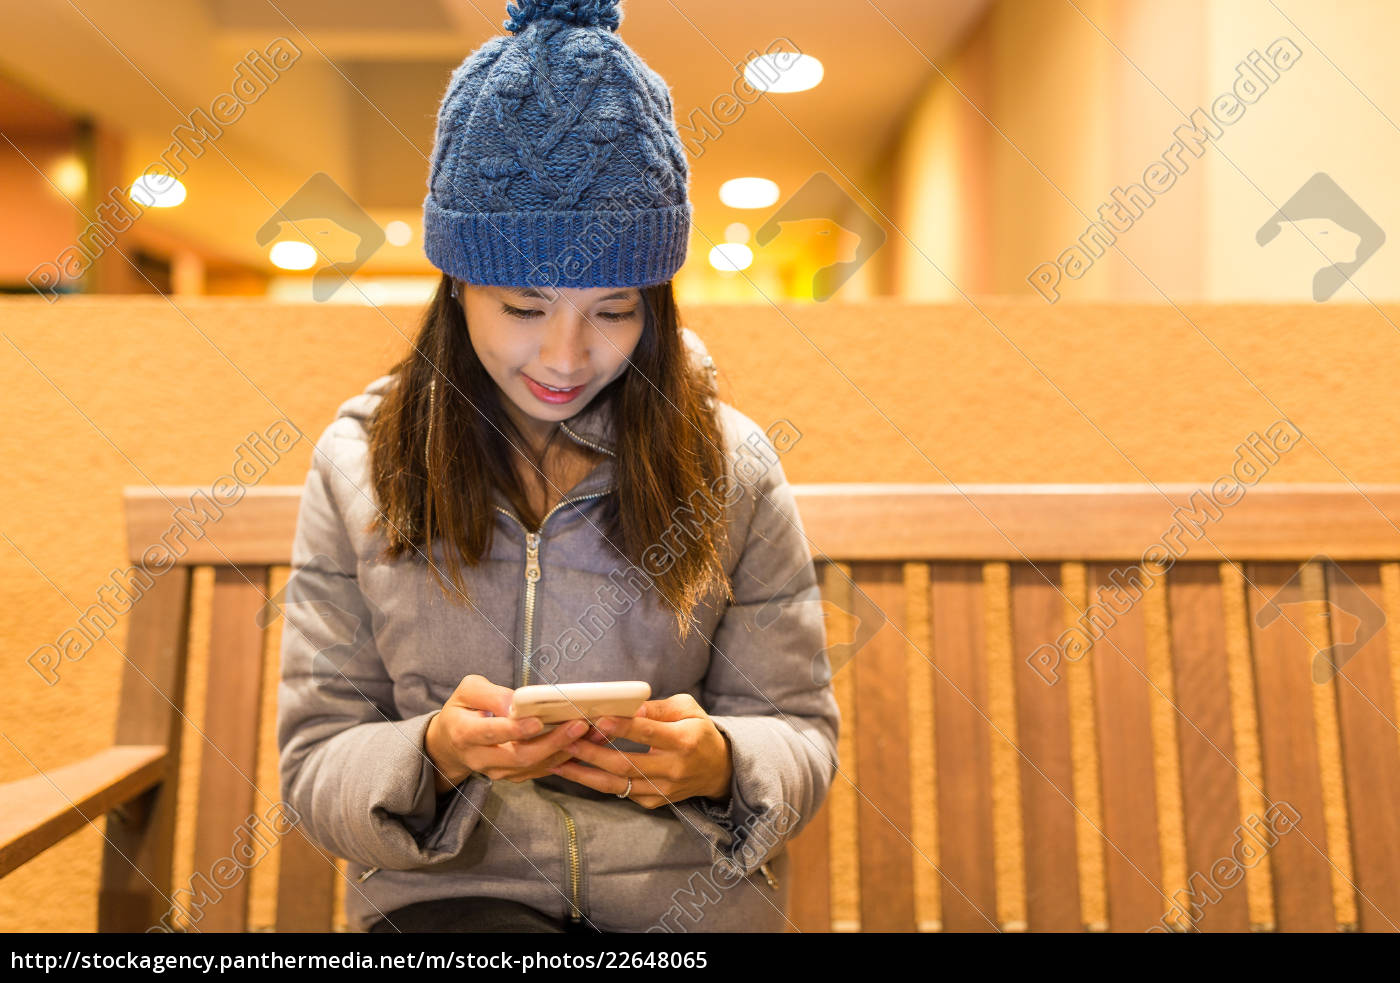 woman, use, of, cellphone - 22648065